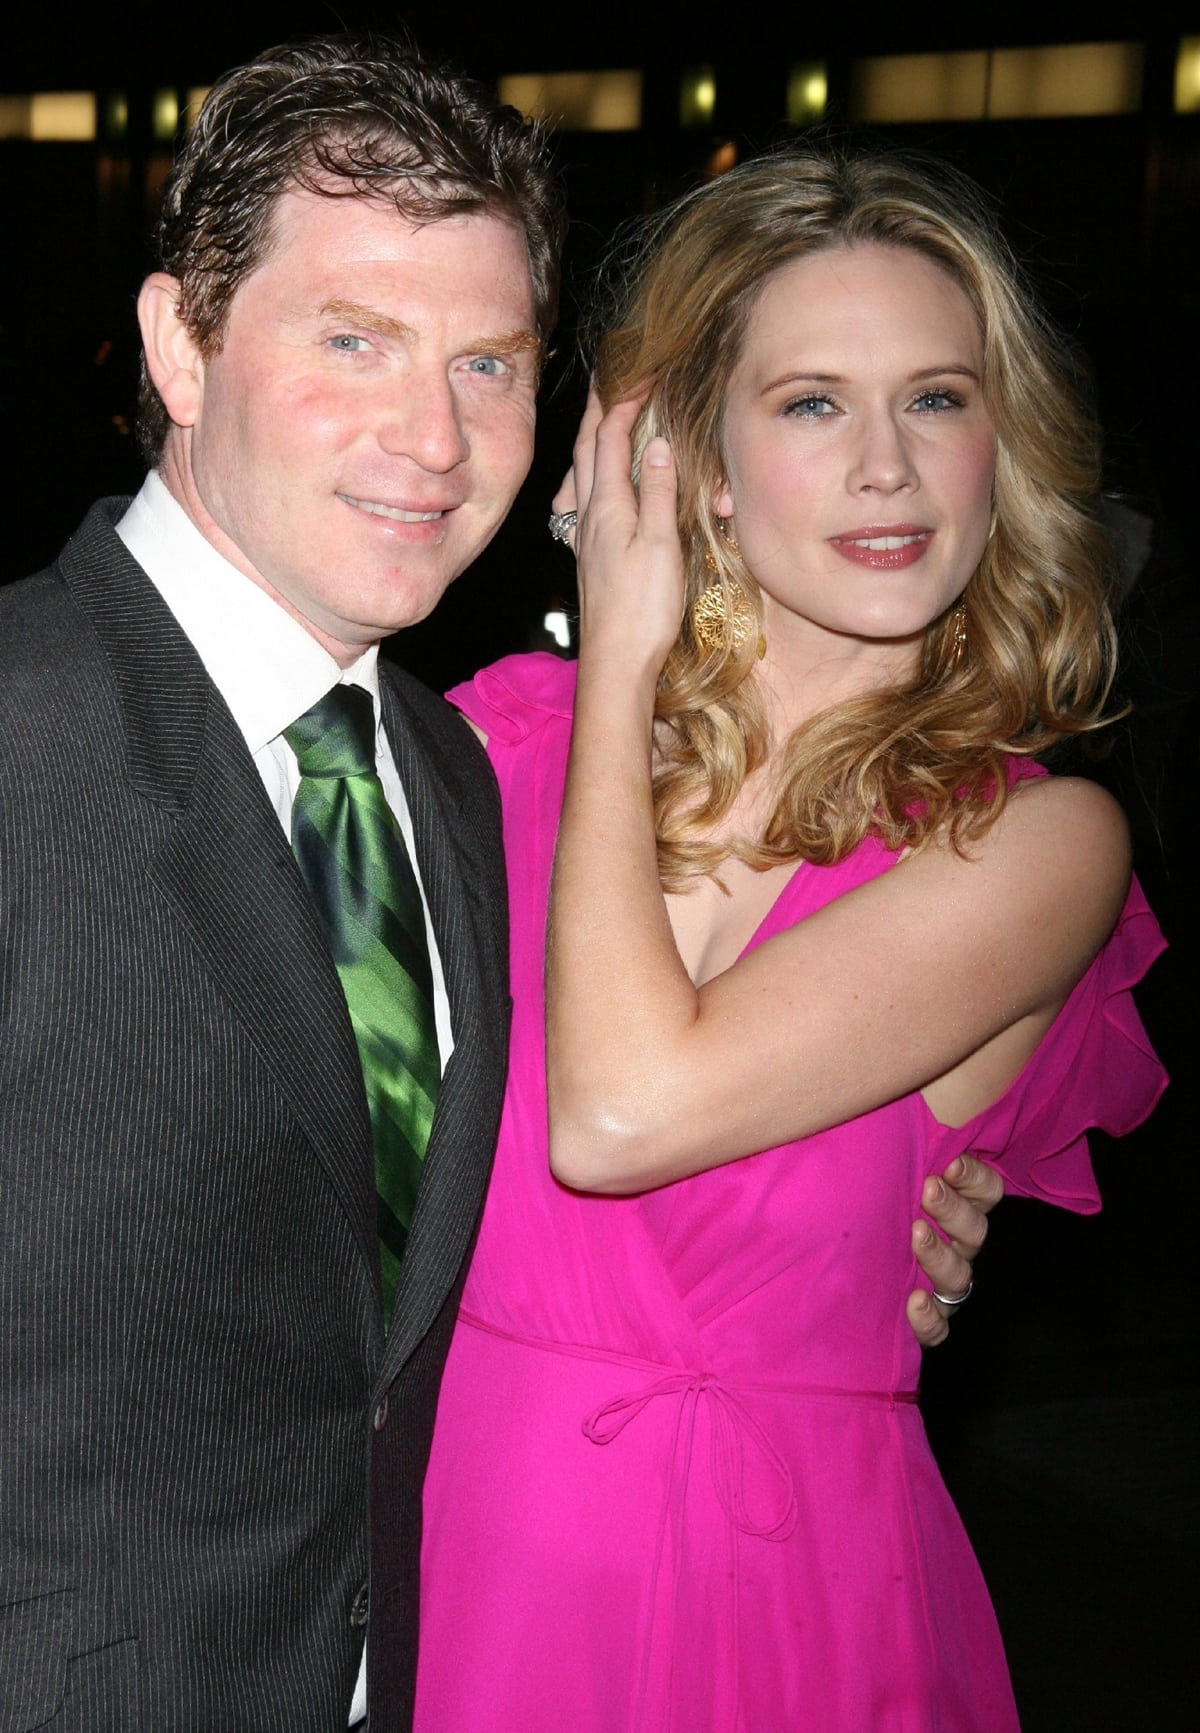 After dating for five years, Bobby Flay and Stephanie March were married on February 20, 2005, at St. Peter's Episcopal in New York City by Rev. K Dennis Winslow